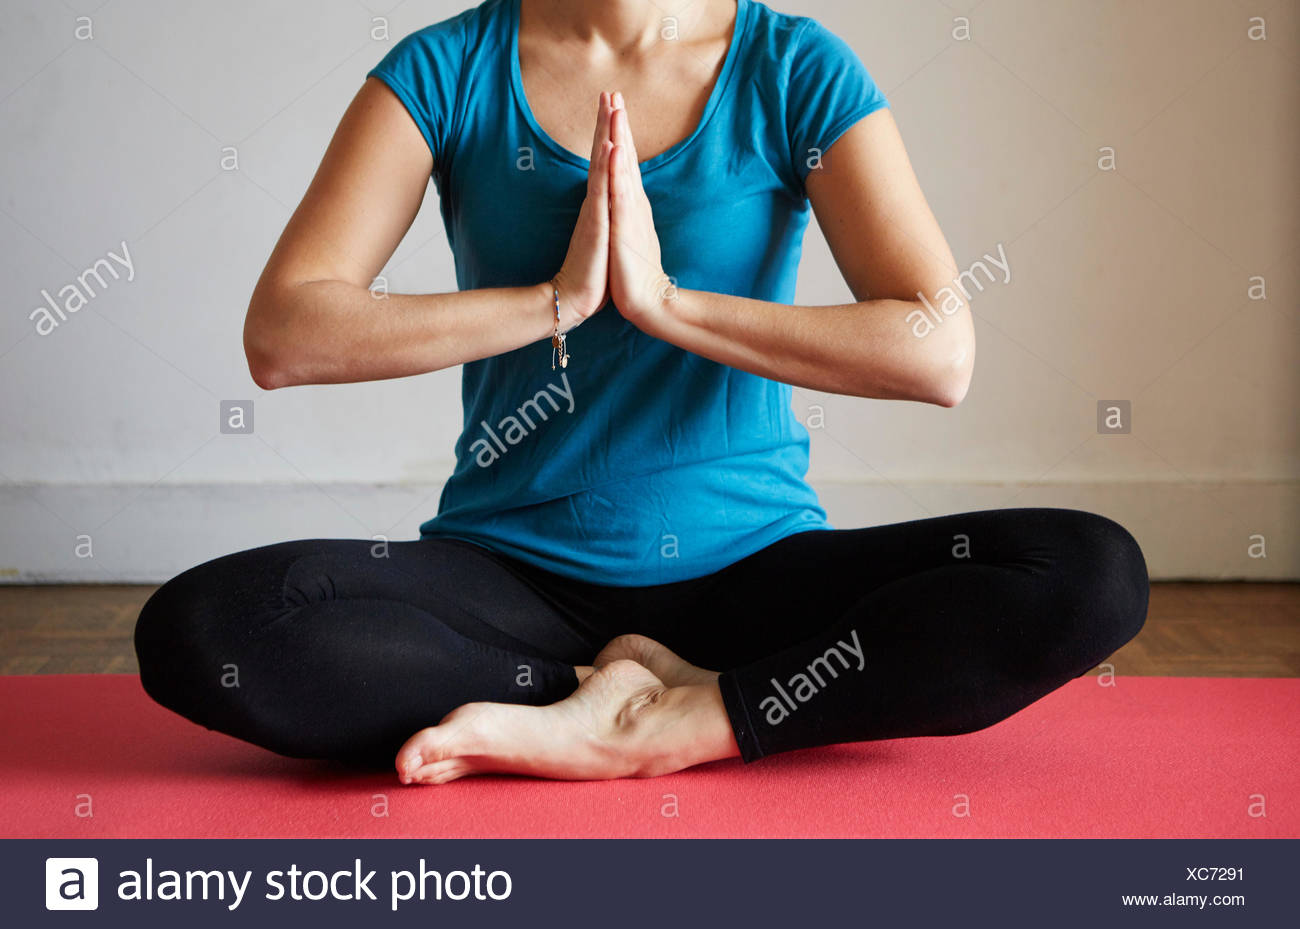 Cropped view of woman sitting cross legged, hands together meditating - Stock Image